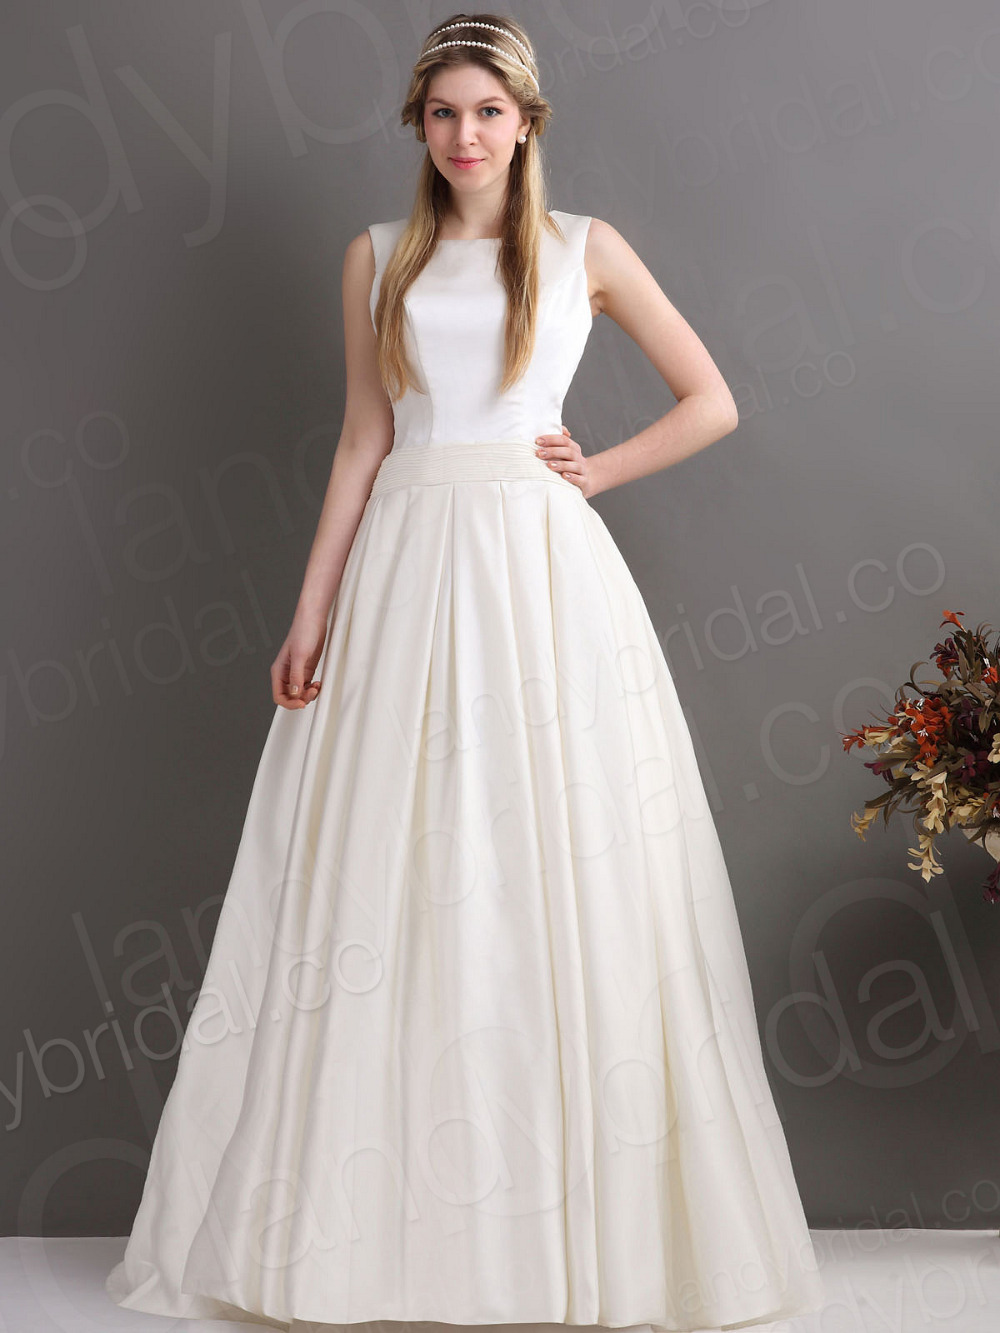 German Wedding Dresses Mother Of The Bride Dresses - 1000x1333 - jpeg